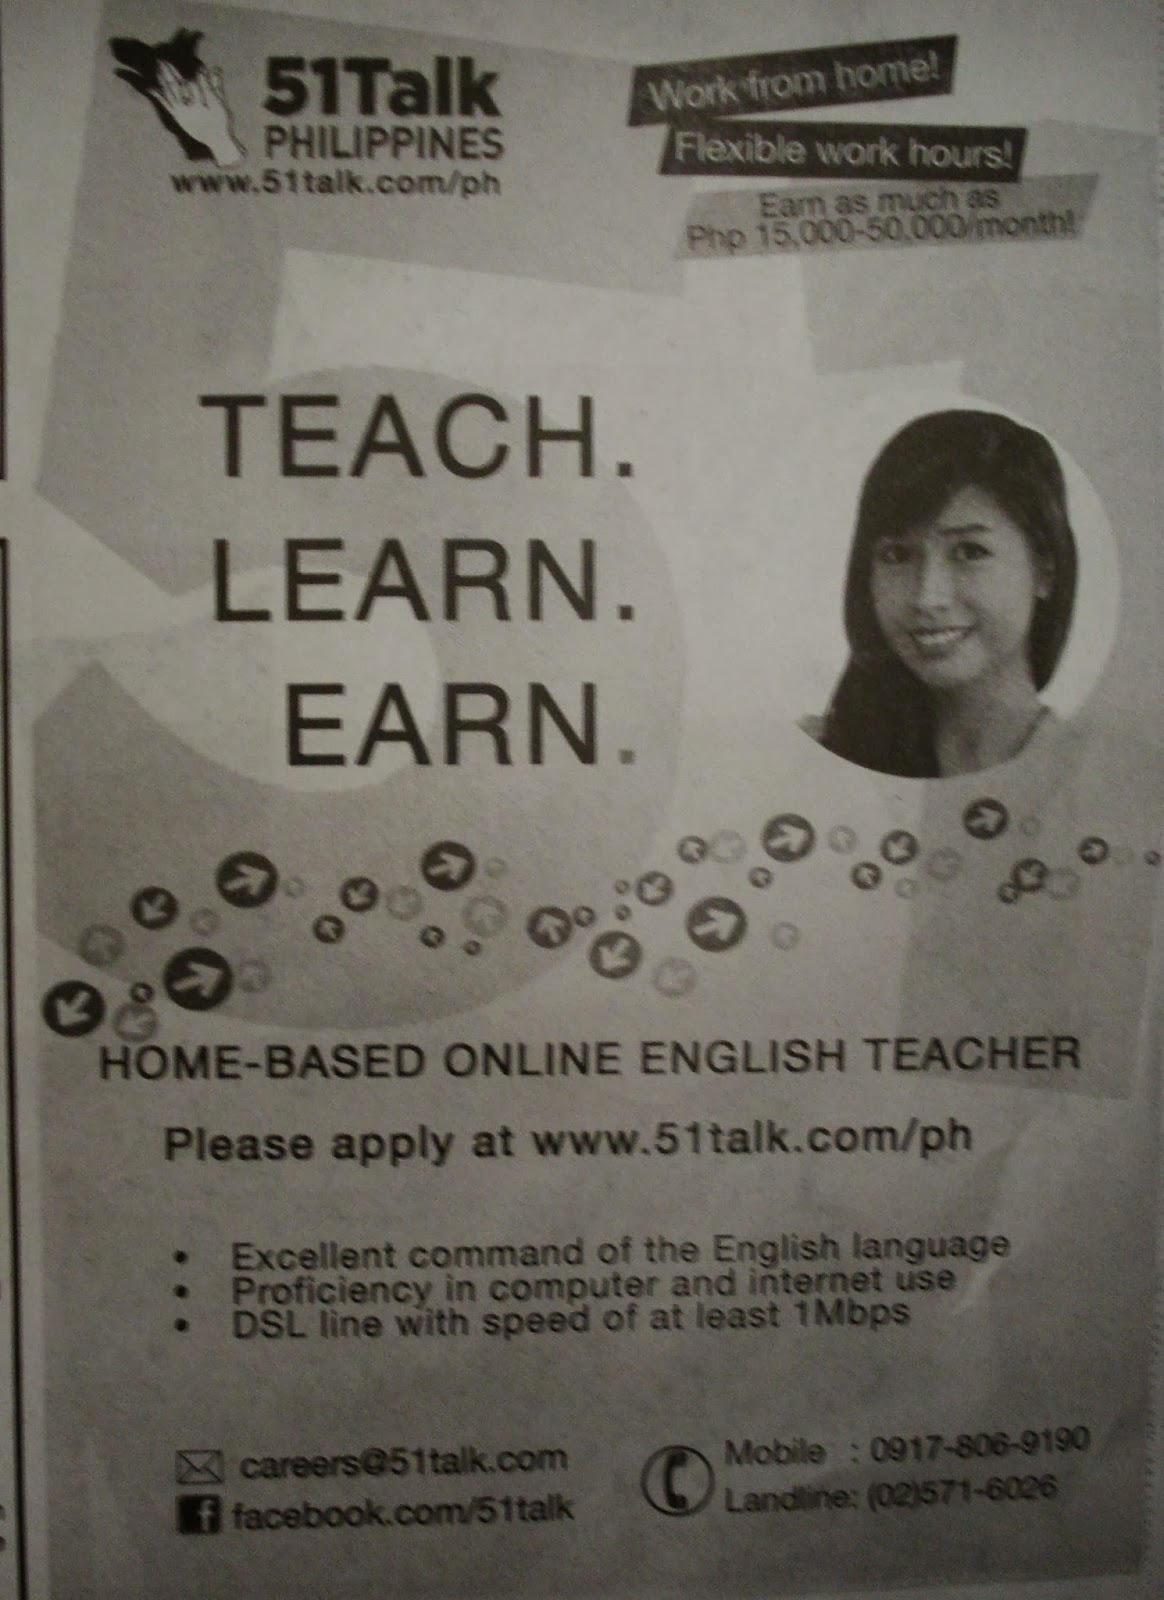 Work From Home, 51Talk Philippines, Home-based Online English Teacher.